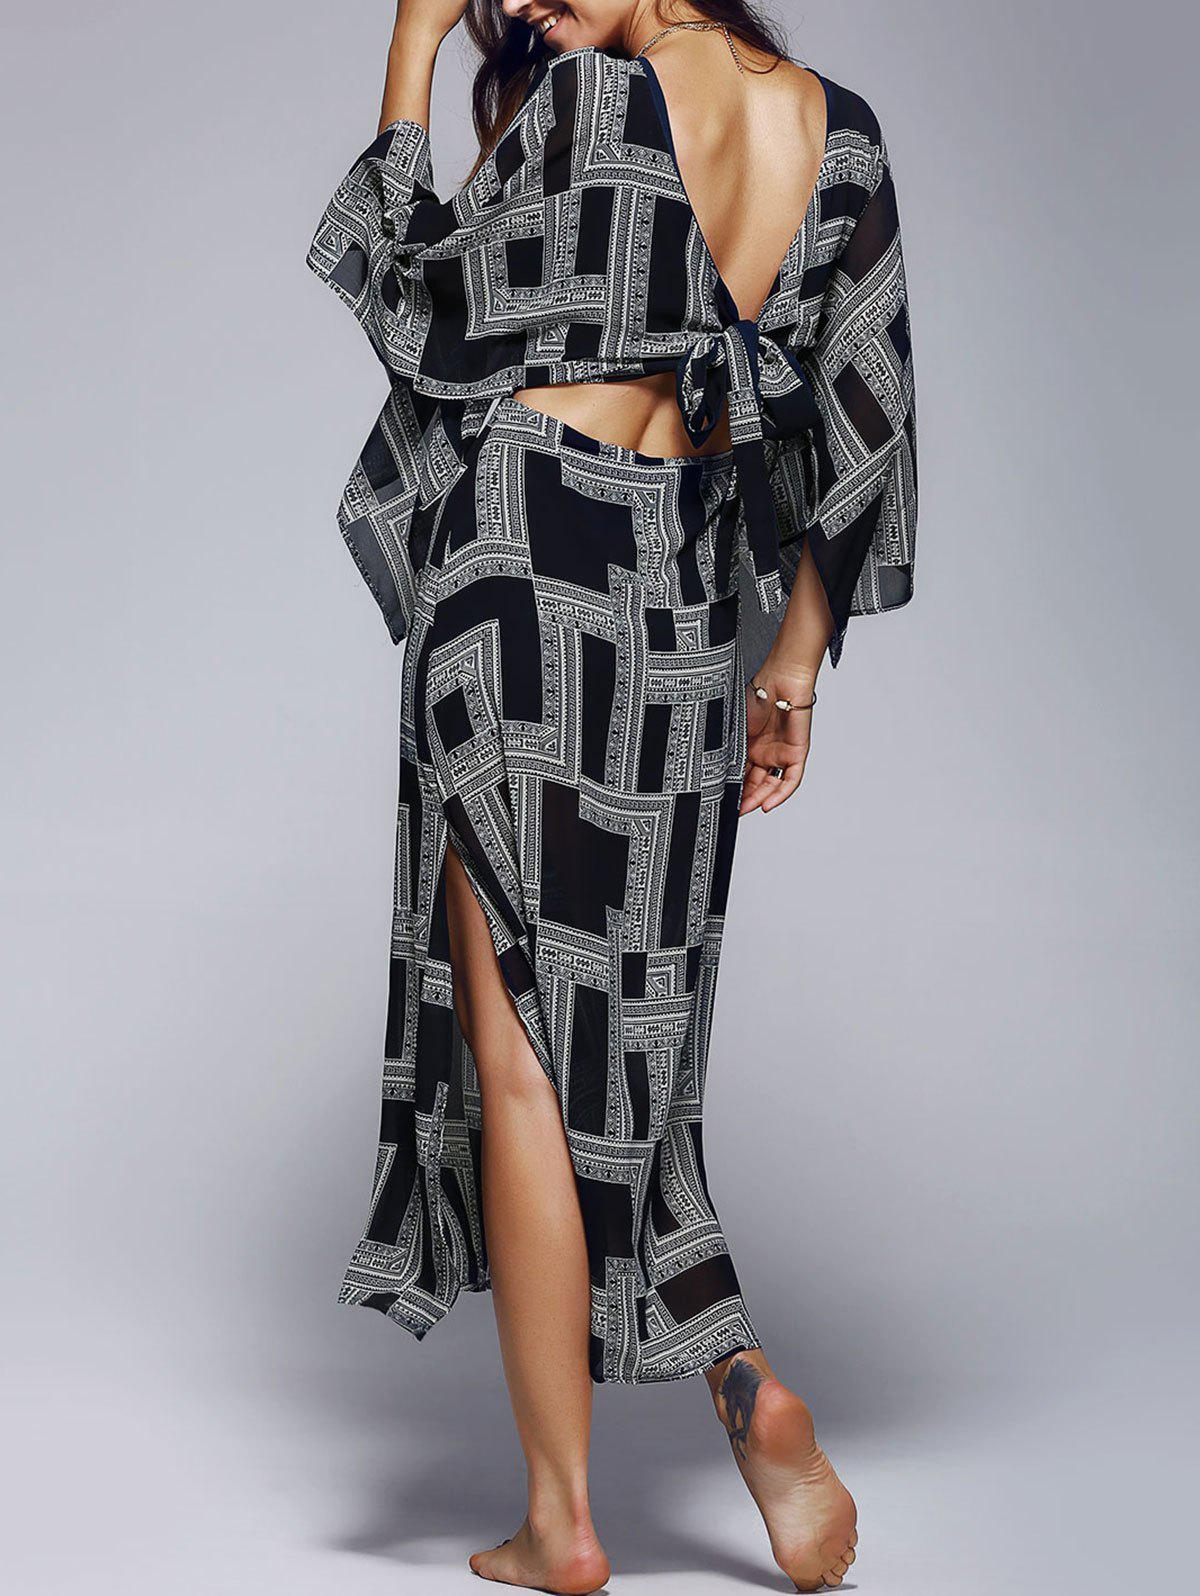 Ethnic Batwing Sleeve Convertible Top and Printed Skirt For Women - BLACK M